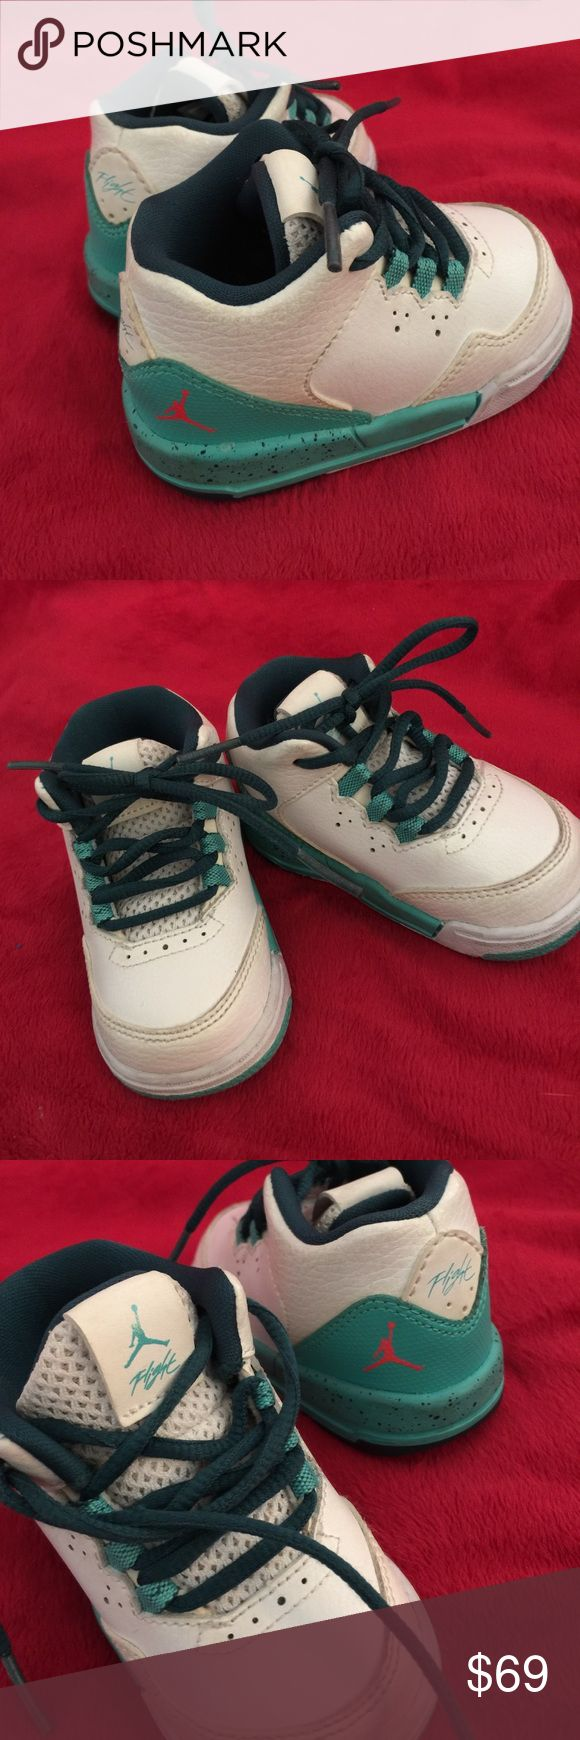 🐬 NIKE AIR JORDANS (children's) NO TRADES❌. Authentic NIKE AIR JORDANS for children size 4c (toddler/infant).  Ships ASAP. NO LONGER HAVE THE BOX.  SMOKE FREE HOME Nike Shoes Sneakers